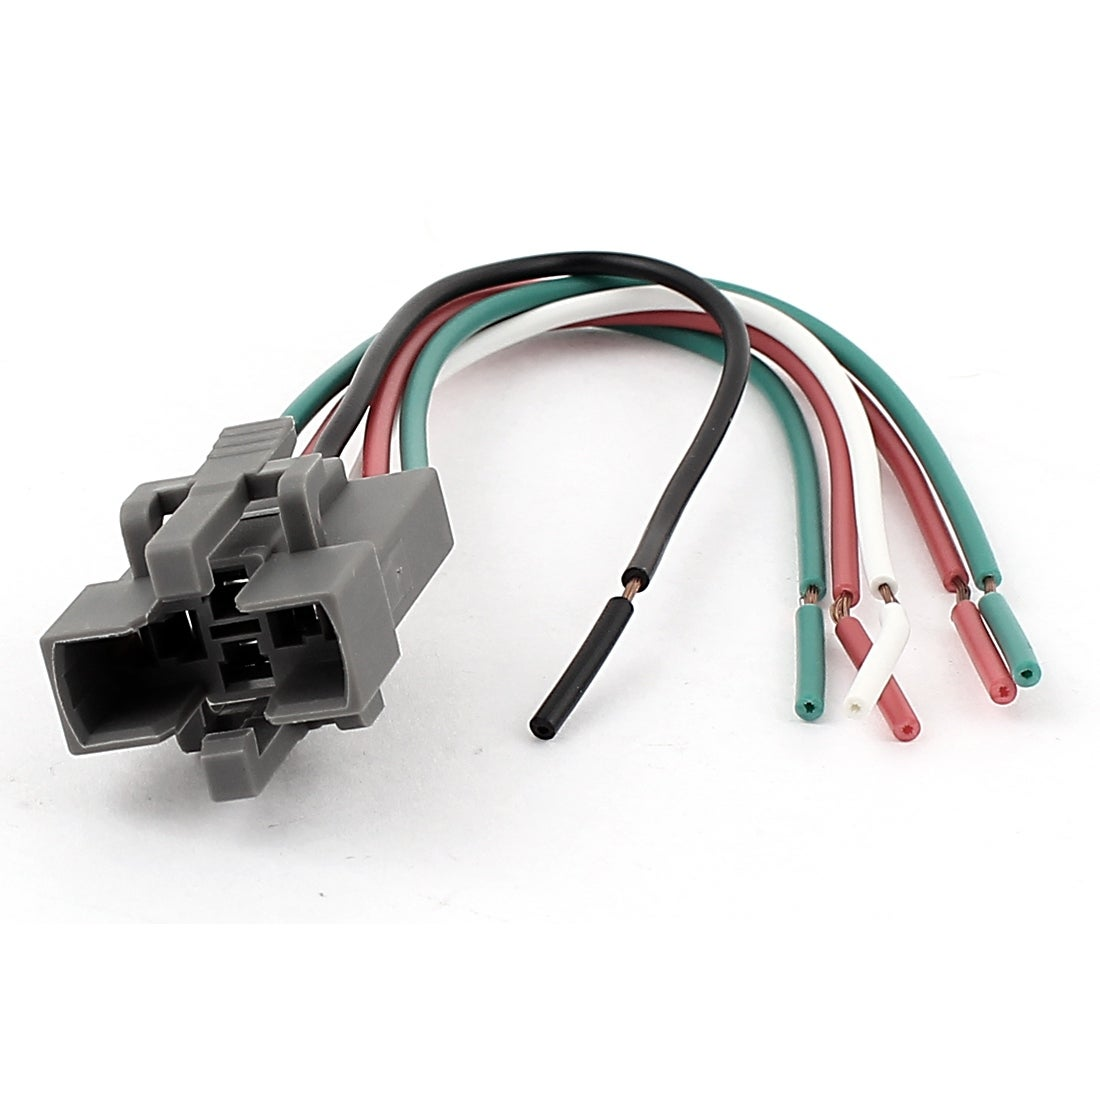 Shop Dc 12v Car Vehicle Air Conditioner 6 Wires Relay Socket Spdt Harness Connector Free Shipping On Orders Over 45 18467886